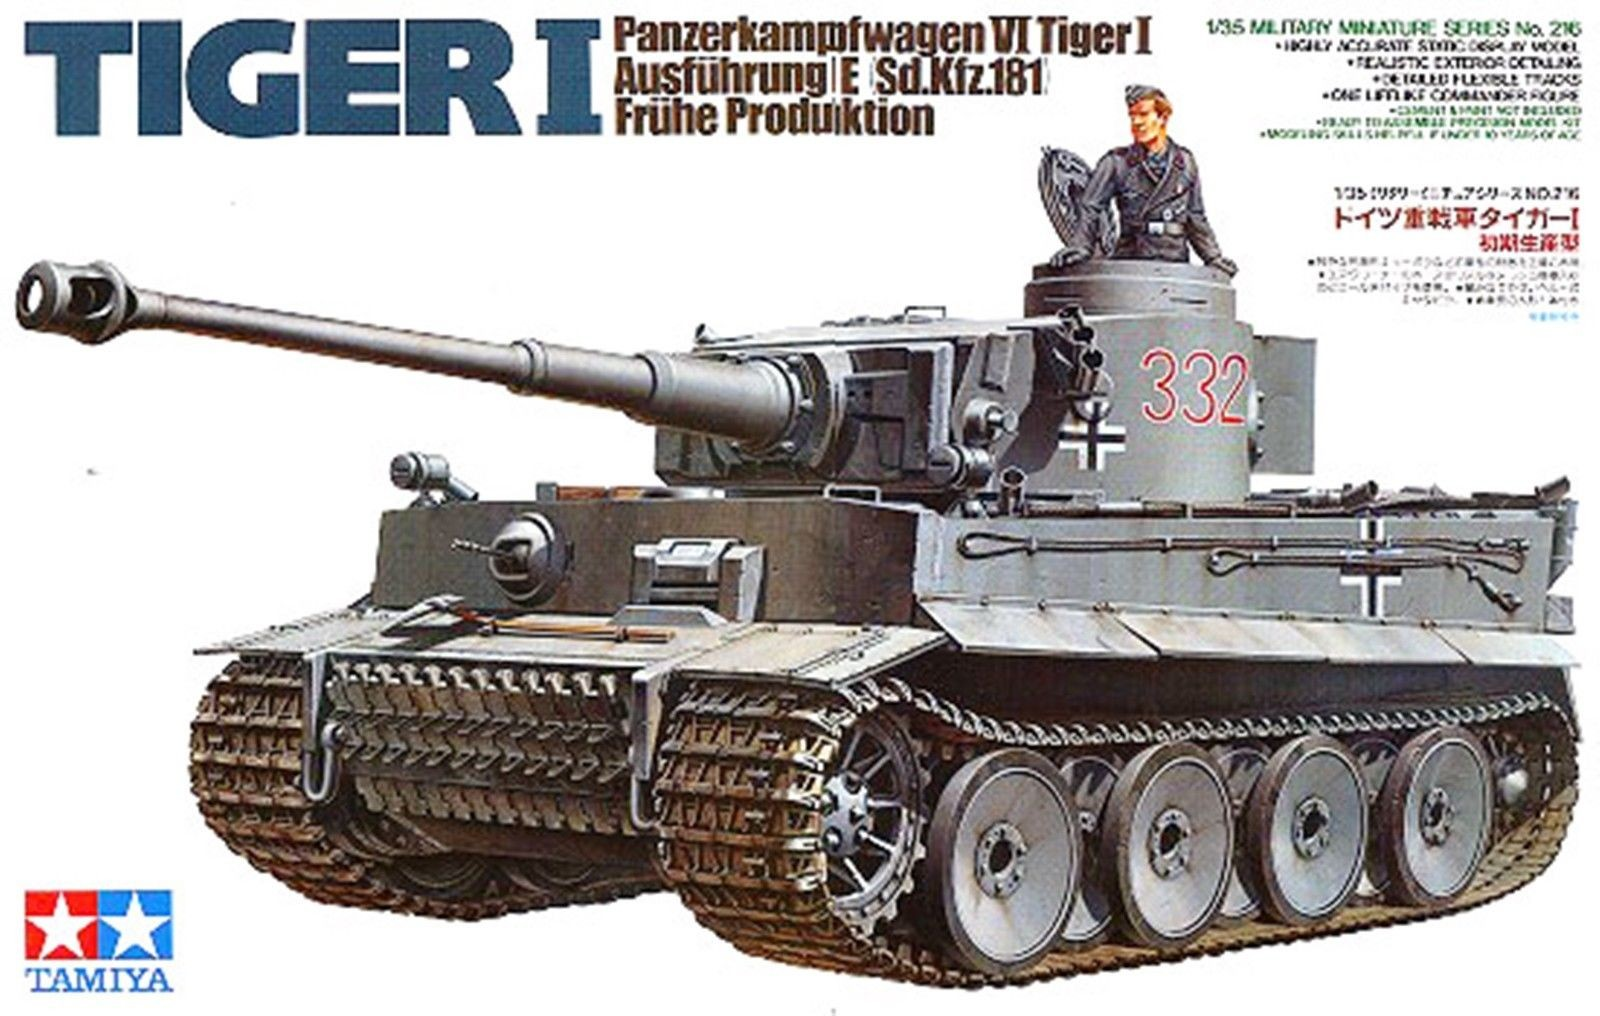 German Tiger I Early Production - Tamiya 35216 - plastic model kit - 1/35 scale